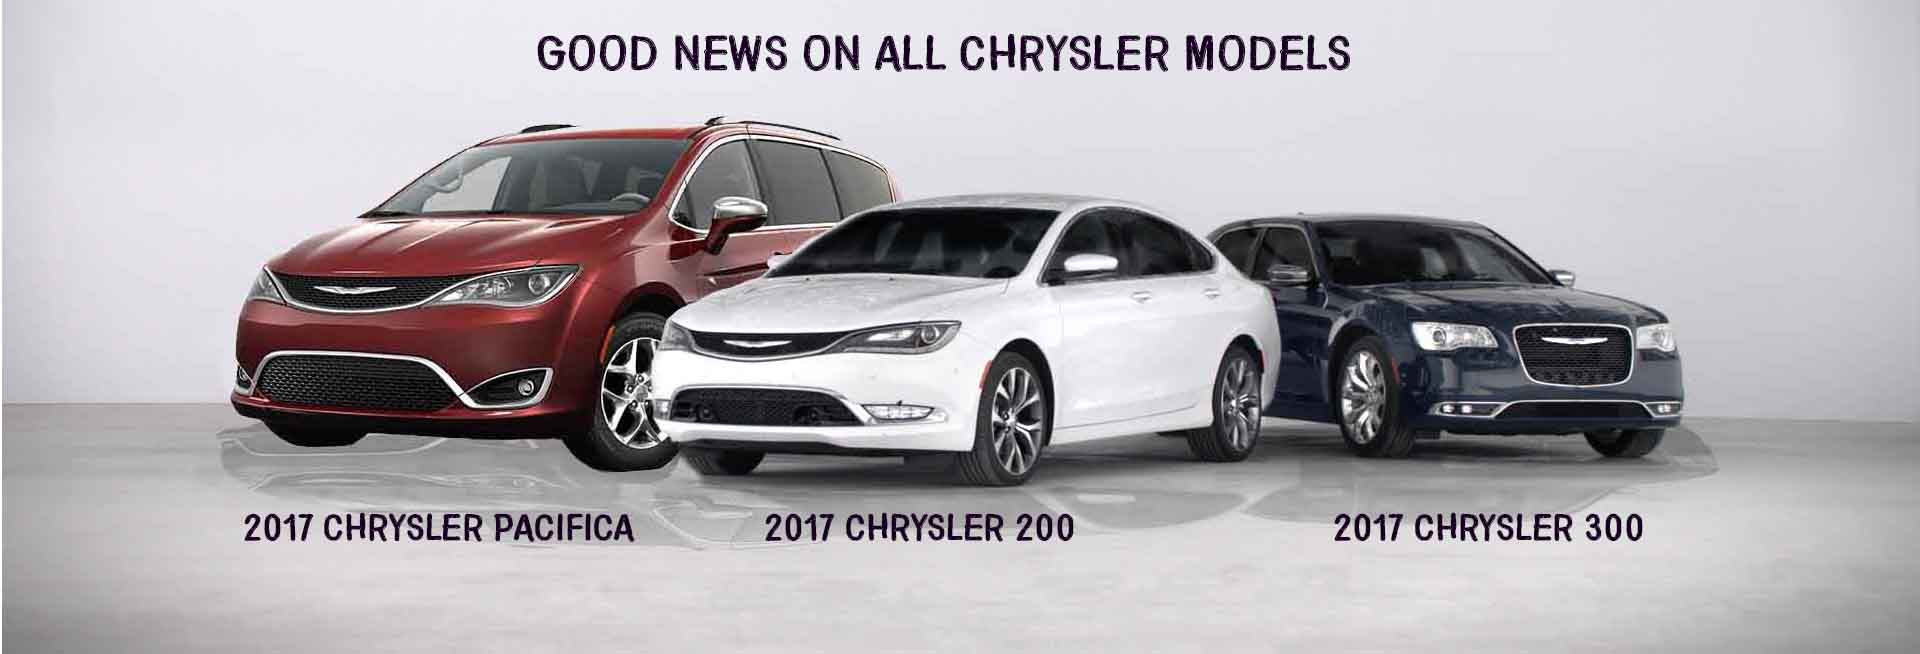 Good News Chrysler Models Aventura